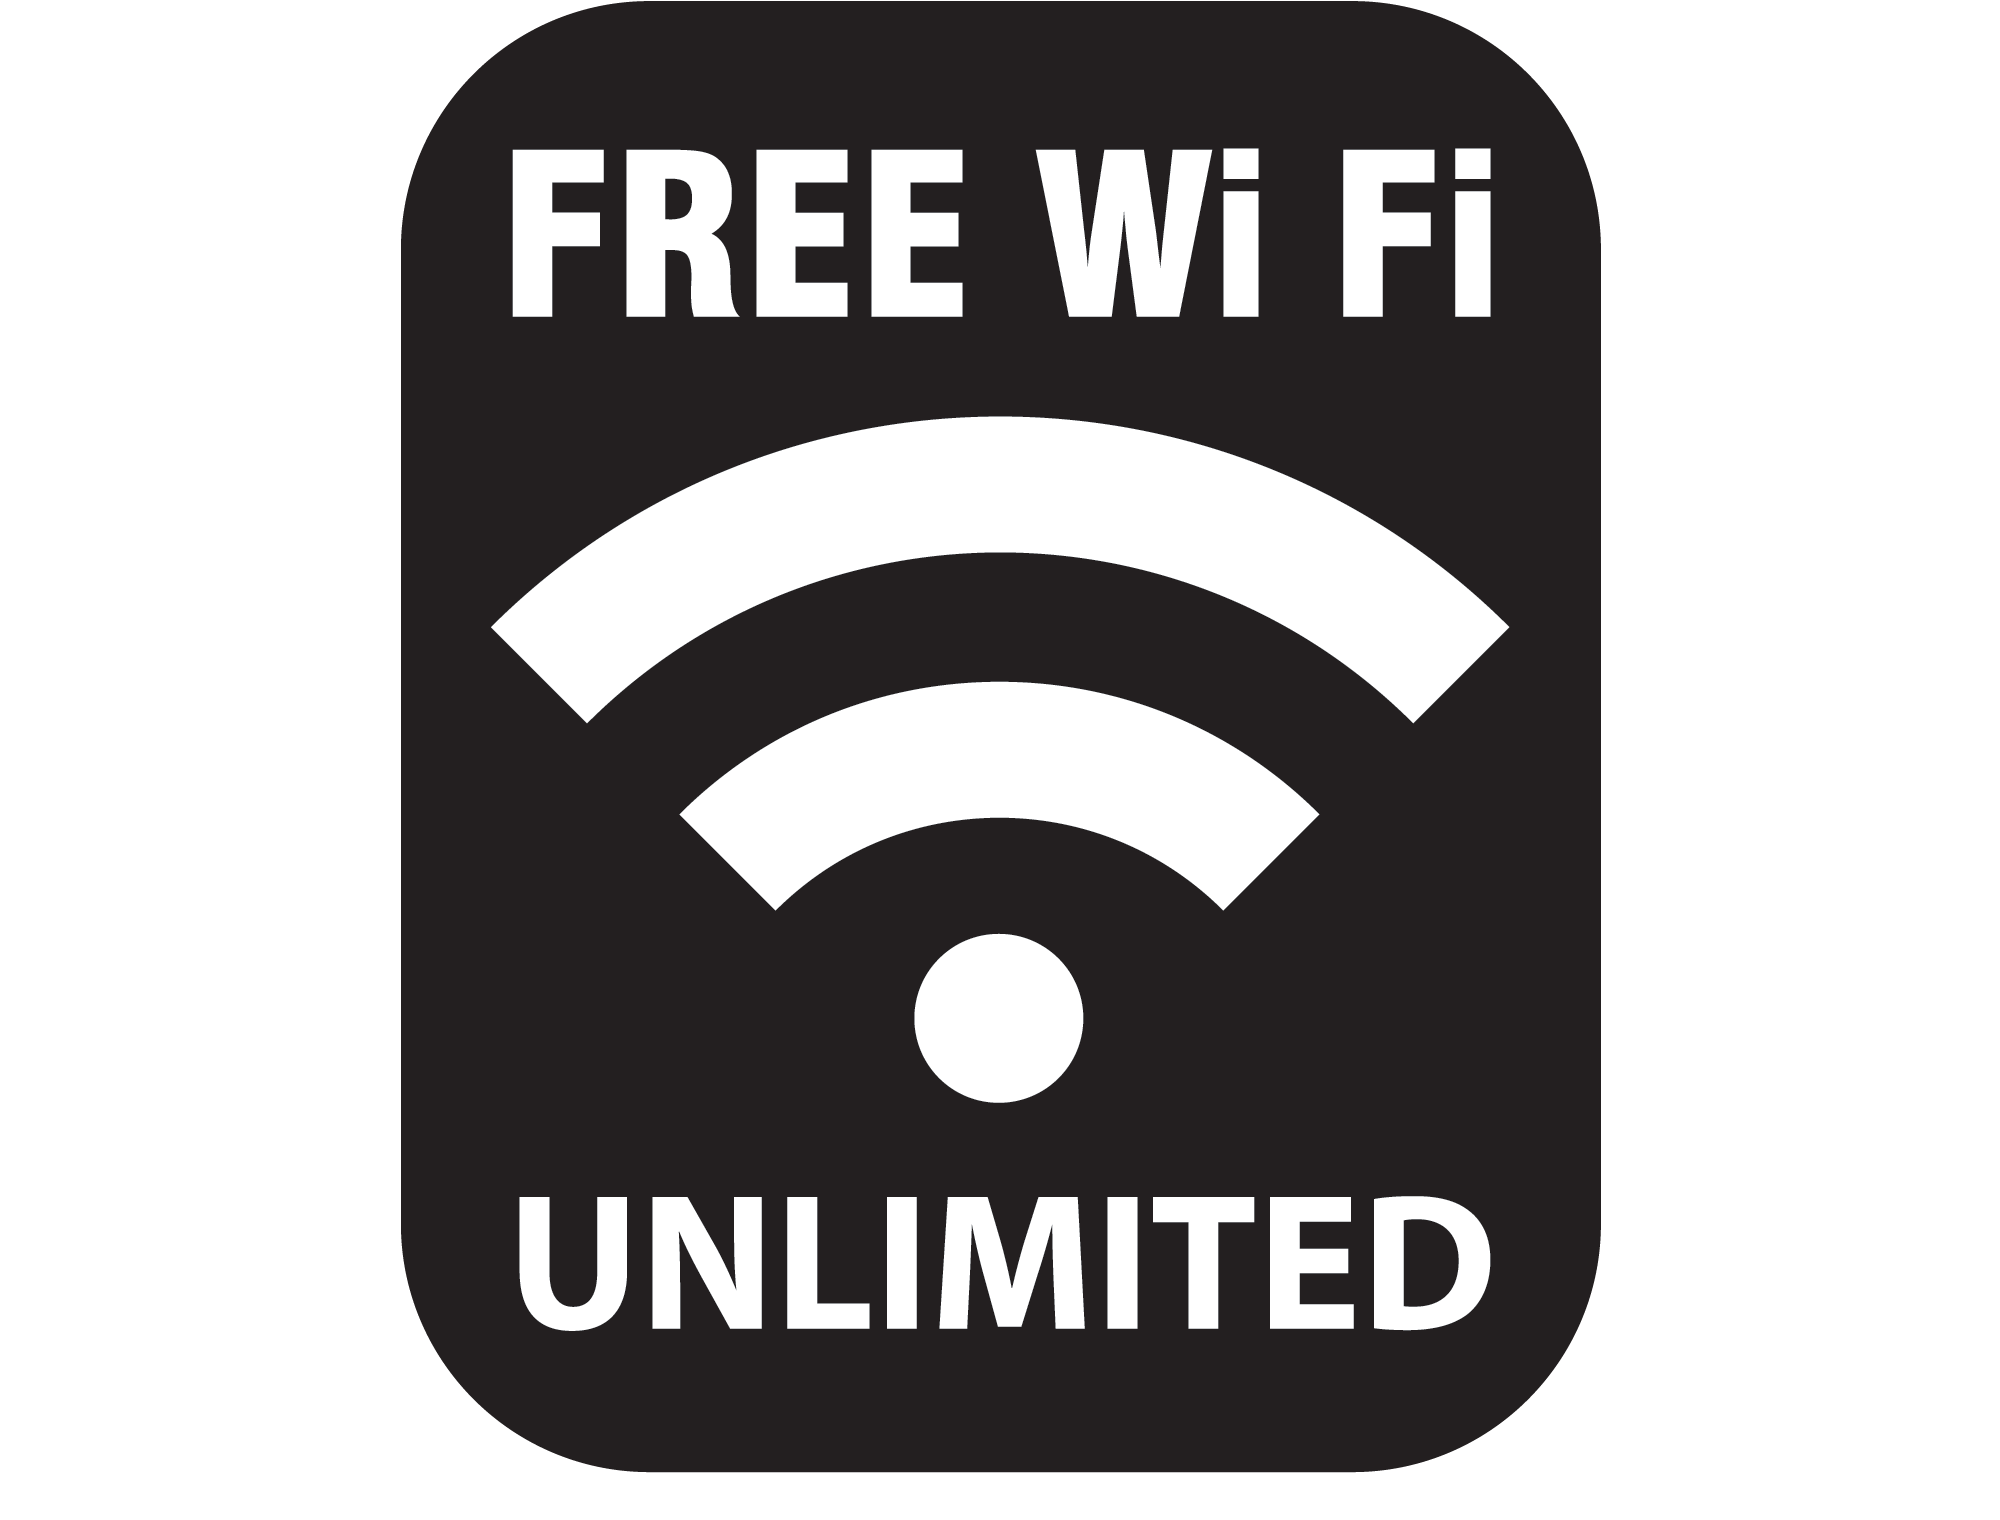 Free Wi Fi unlimited wide.png